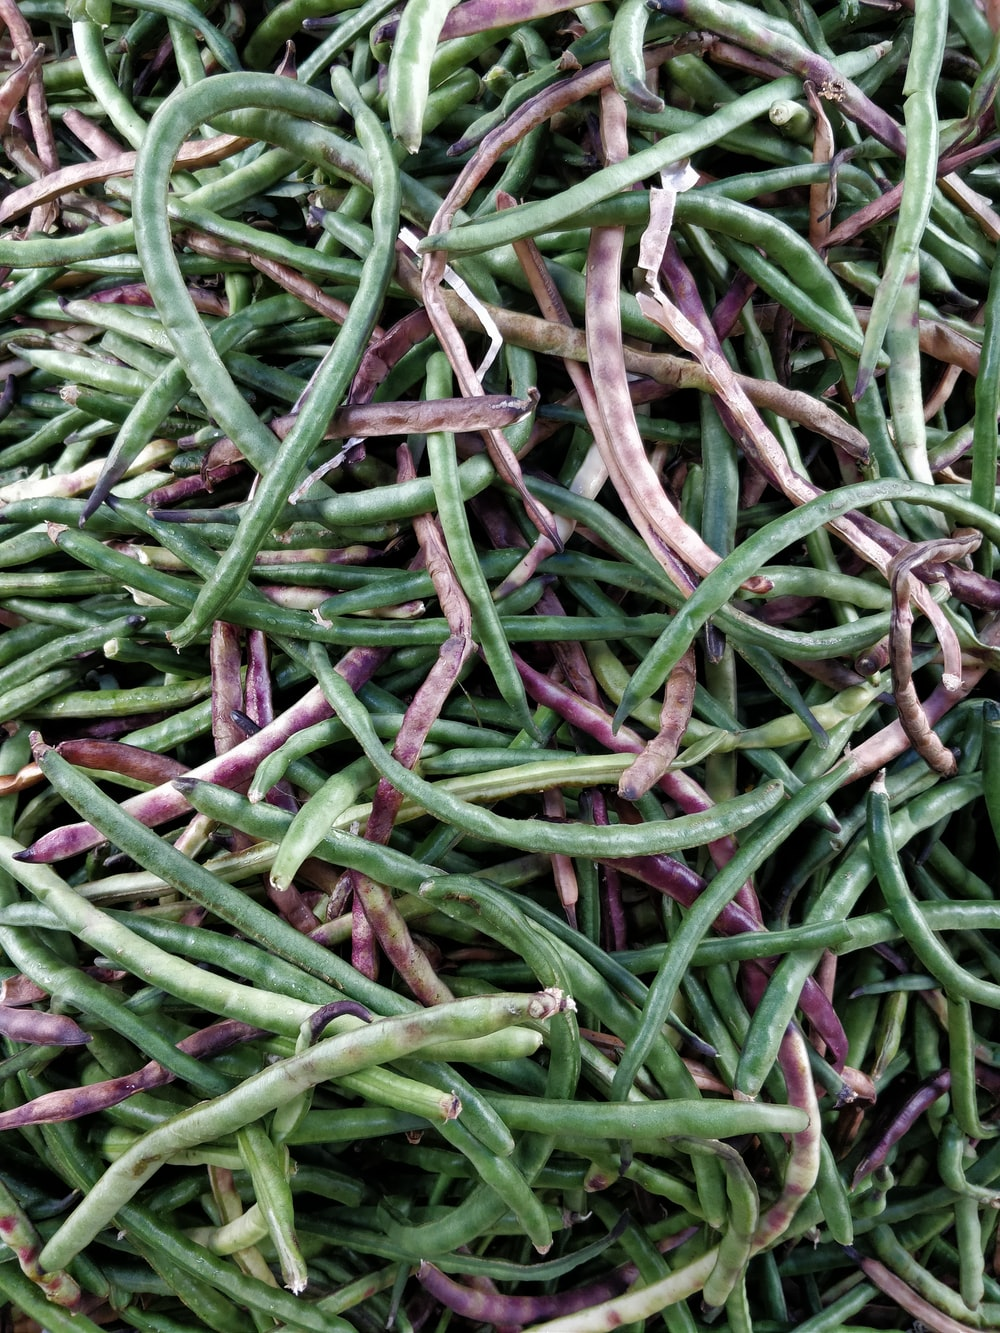 green and purple string beans